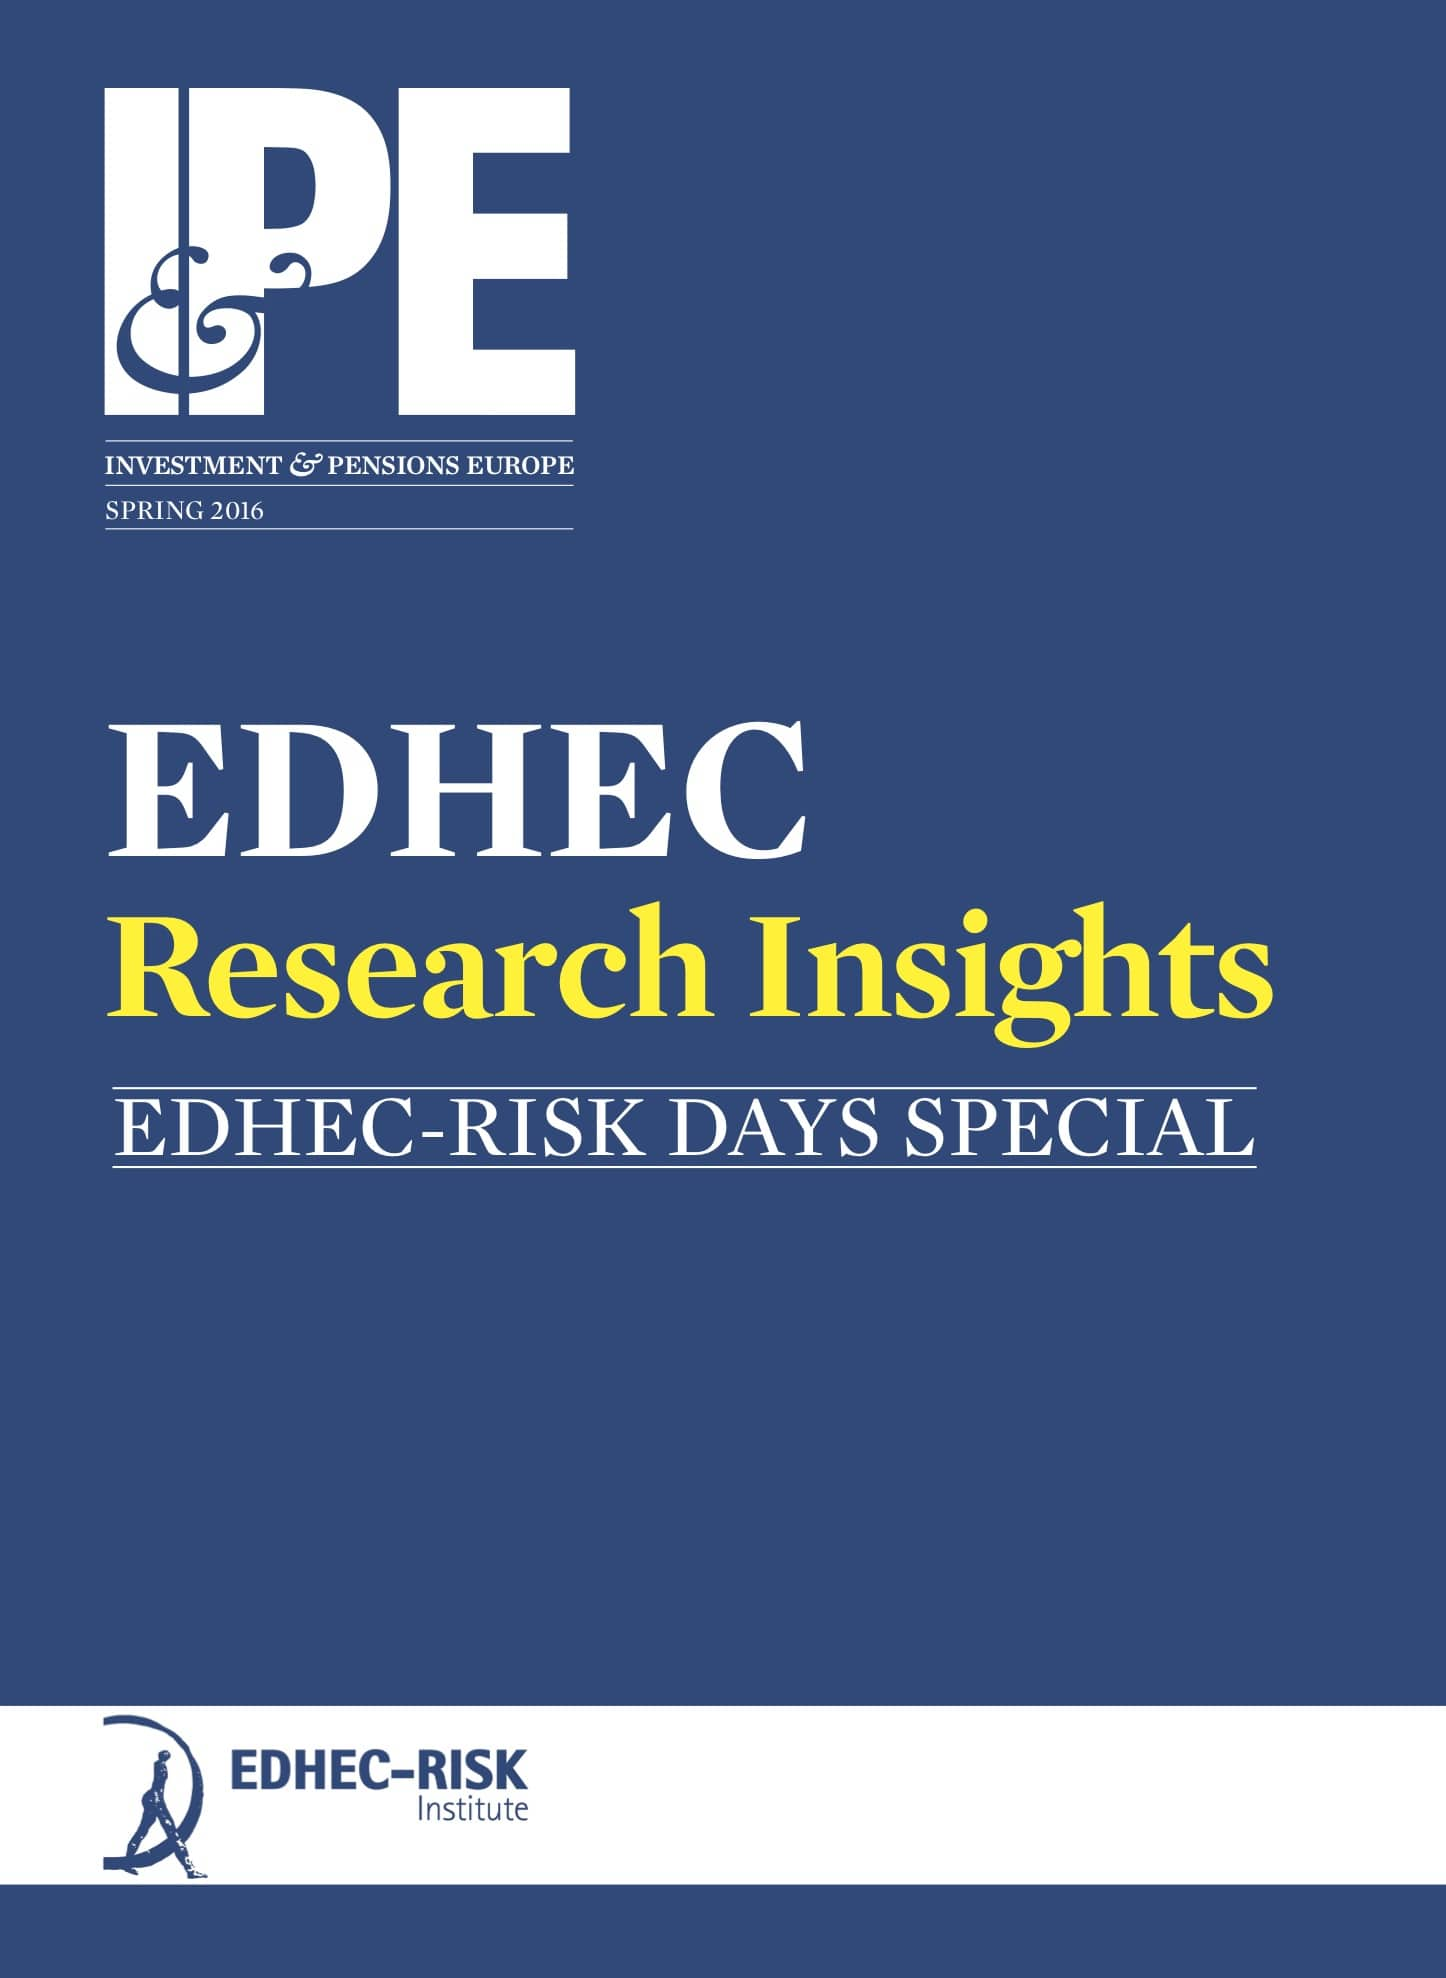 2016 EDHEC-Risk Institute Research Insights